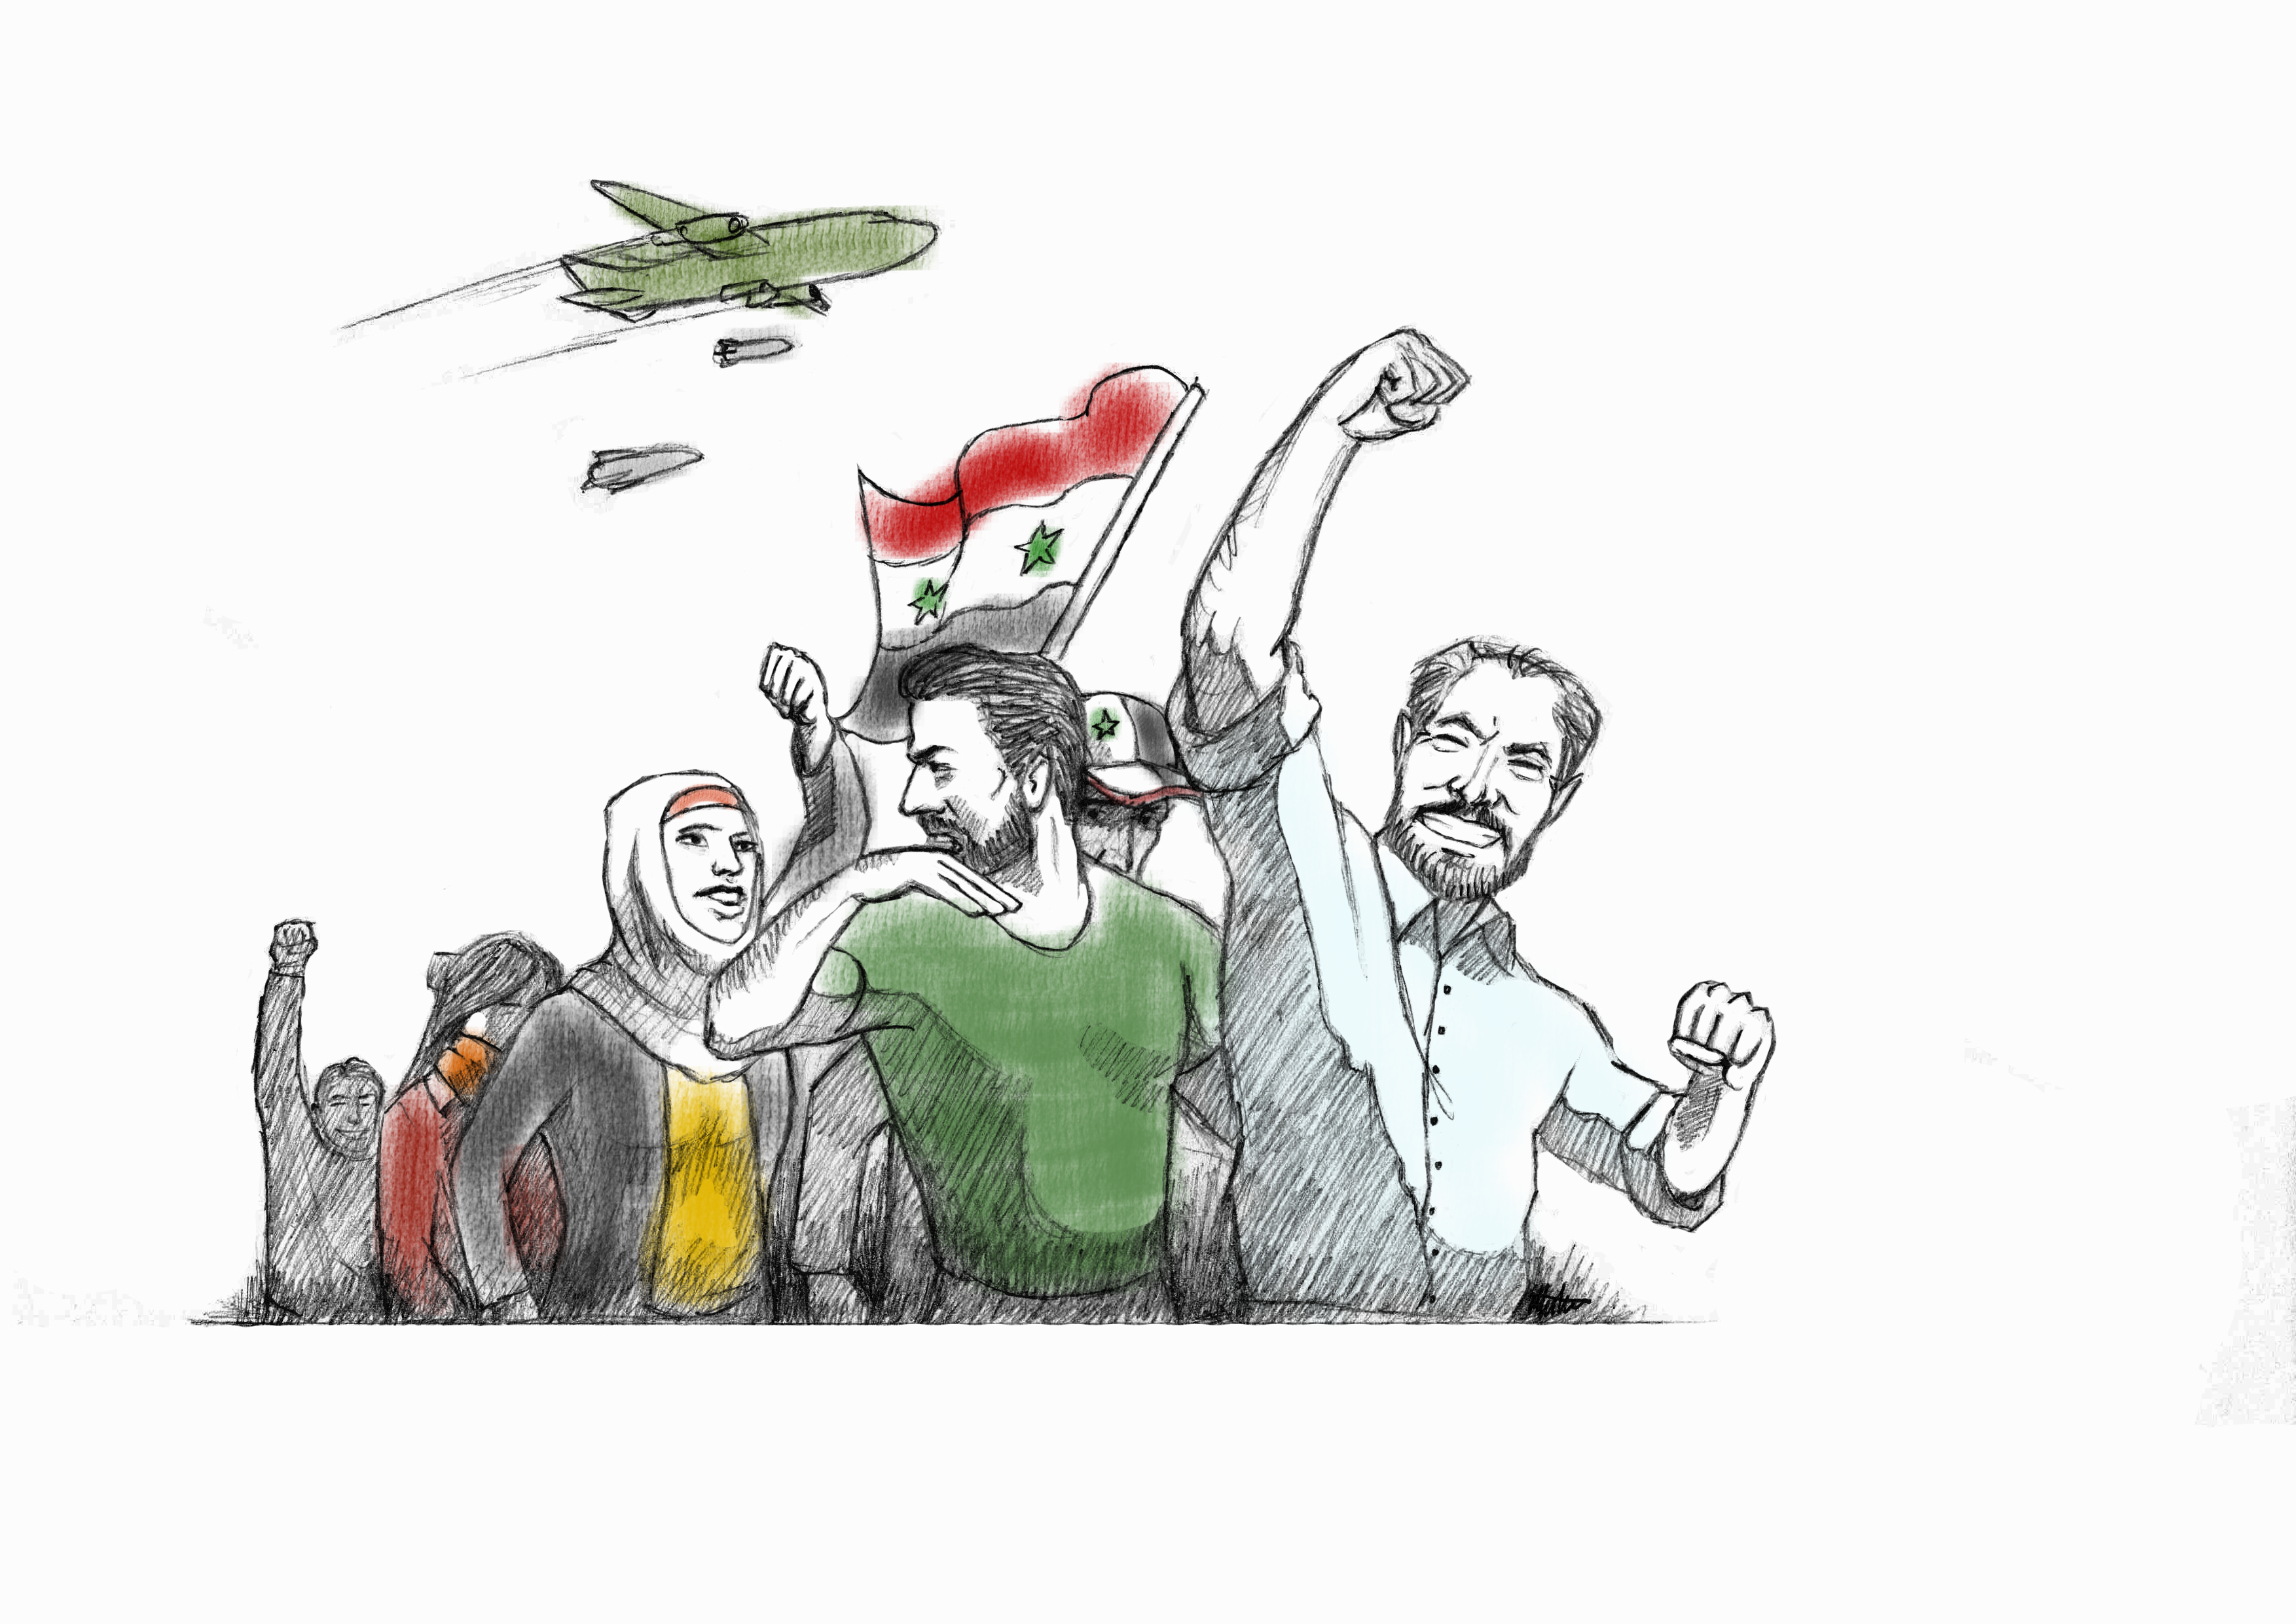 Assad supporters at a rally with a fighter jet dropping bombs on them.